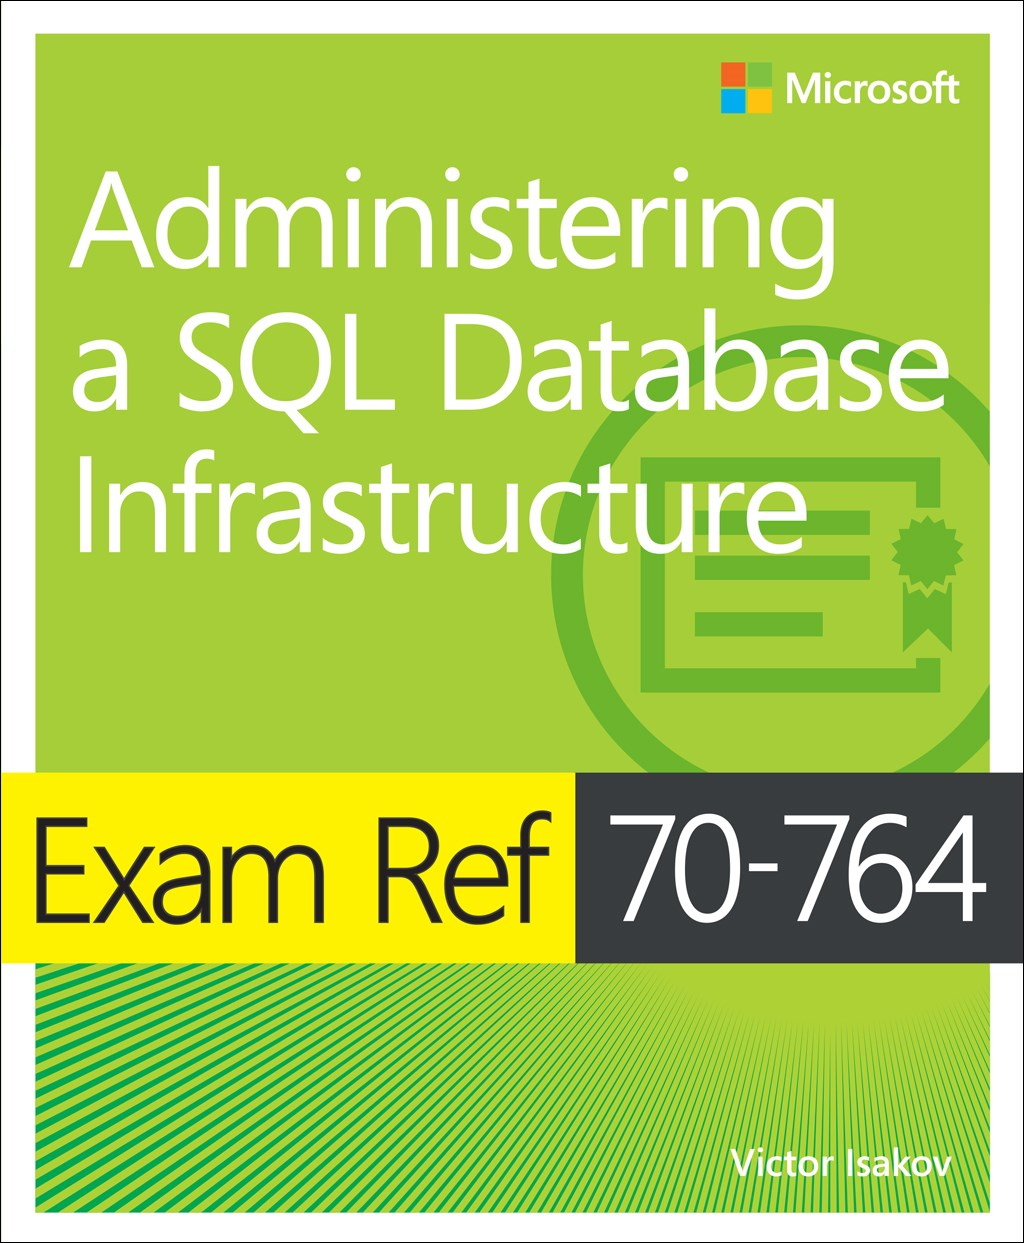 Exam Ref 70-764 Administering a SQL Database Infrastructure